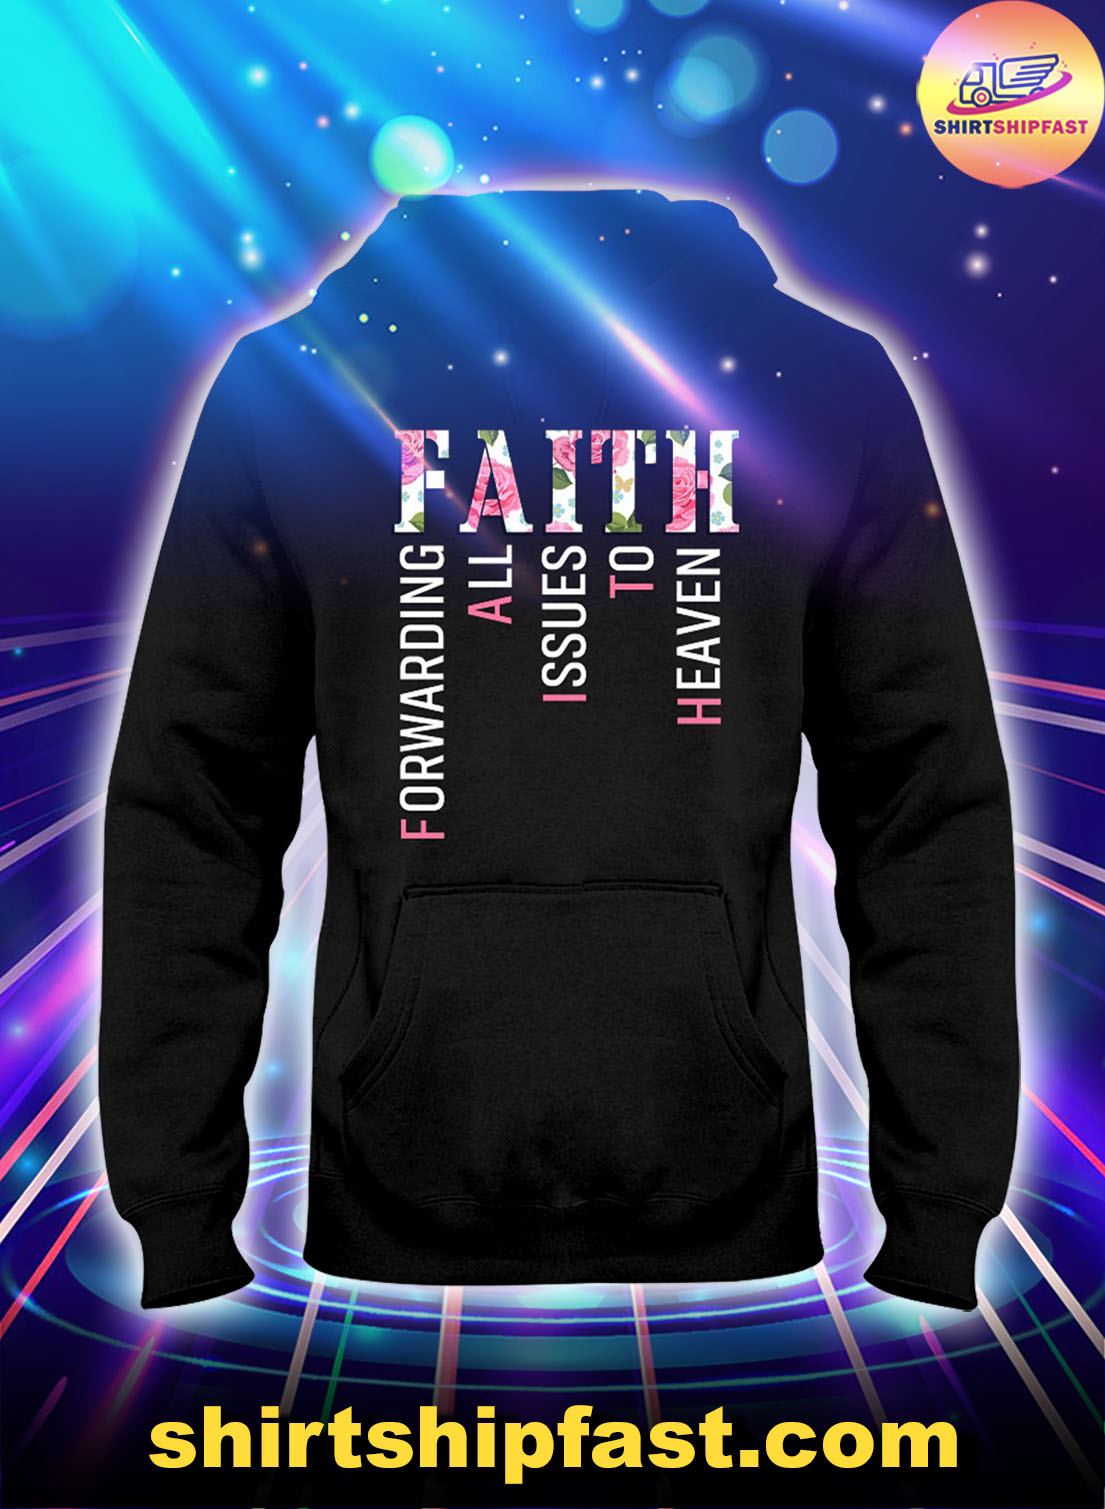 Faith-forwarding-all-issues-to-heaven-floral-hoodie-2